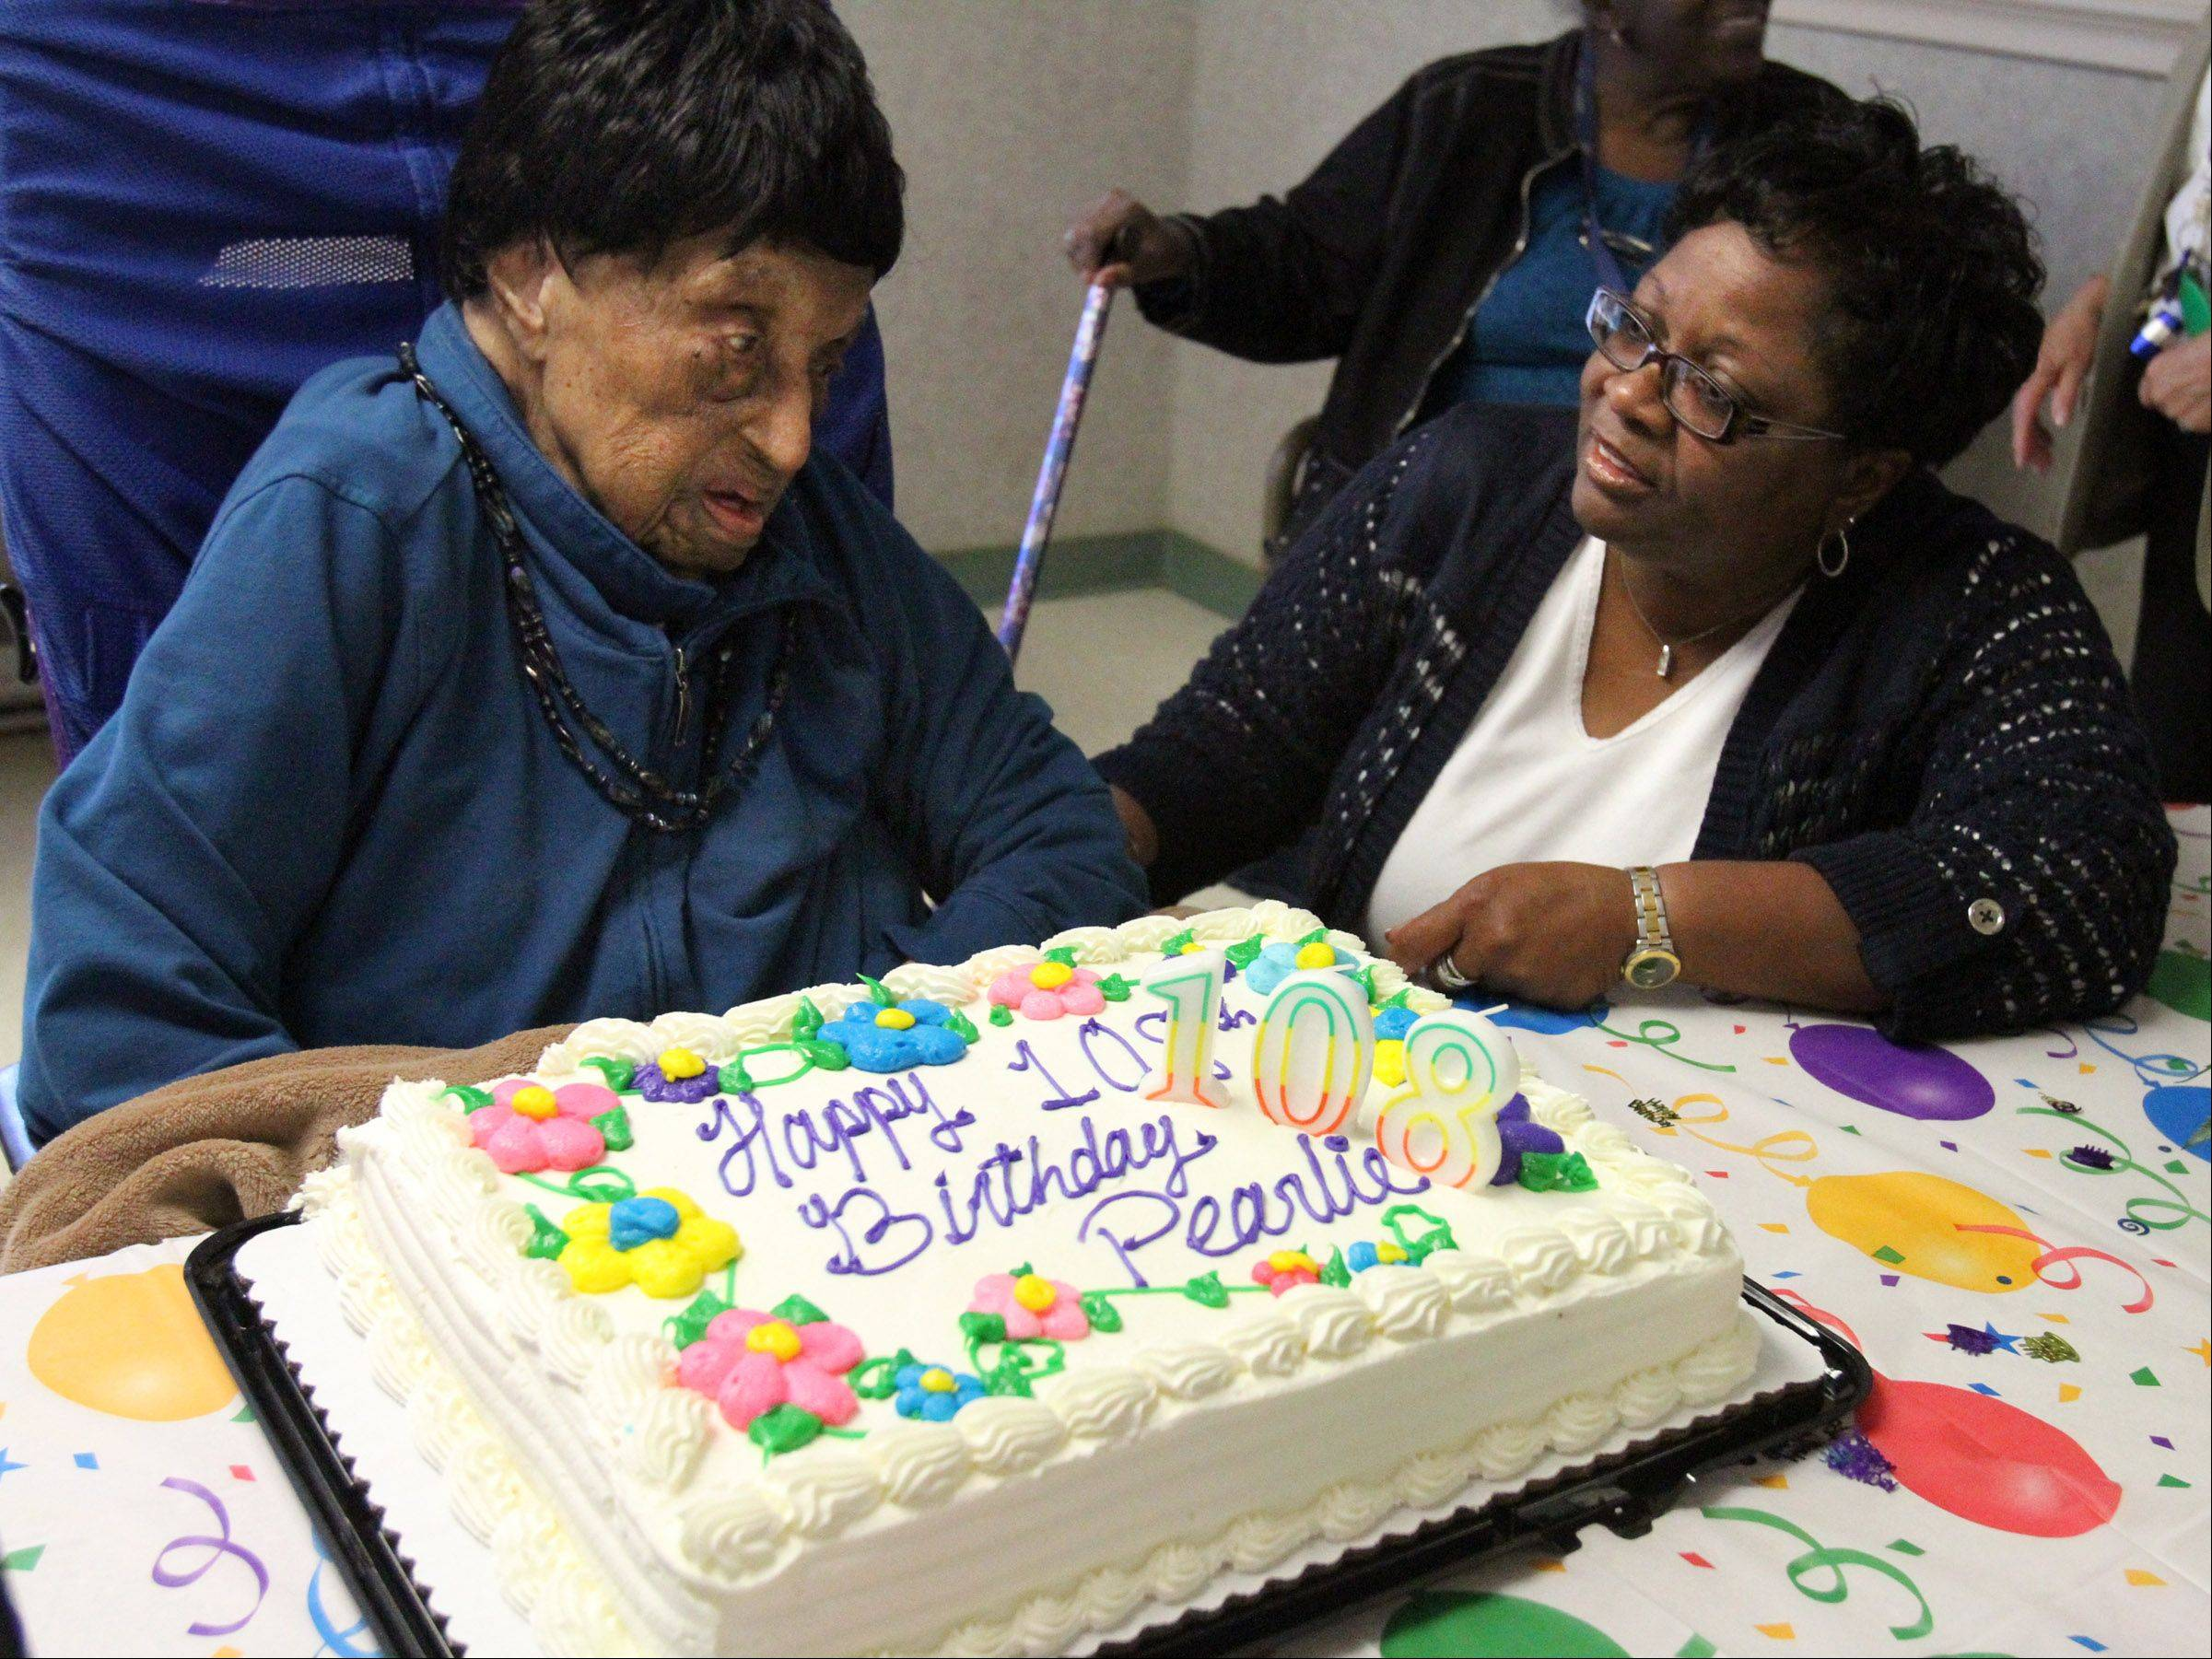 Alma Booker of Round Lake Beach helps her grandmother, Pearlie Young, celebrate her 108th birthday with a cake and candles at Hillcrest Nursing Center in Round Lake Beach on Wednesday.